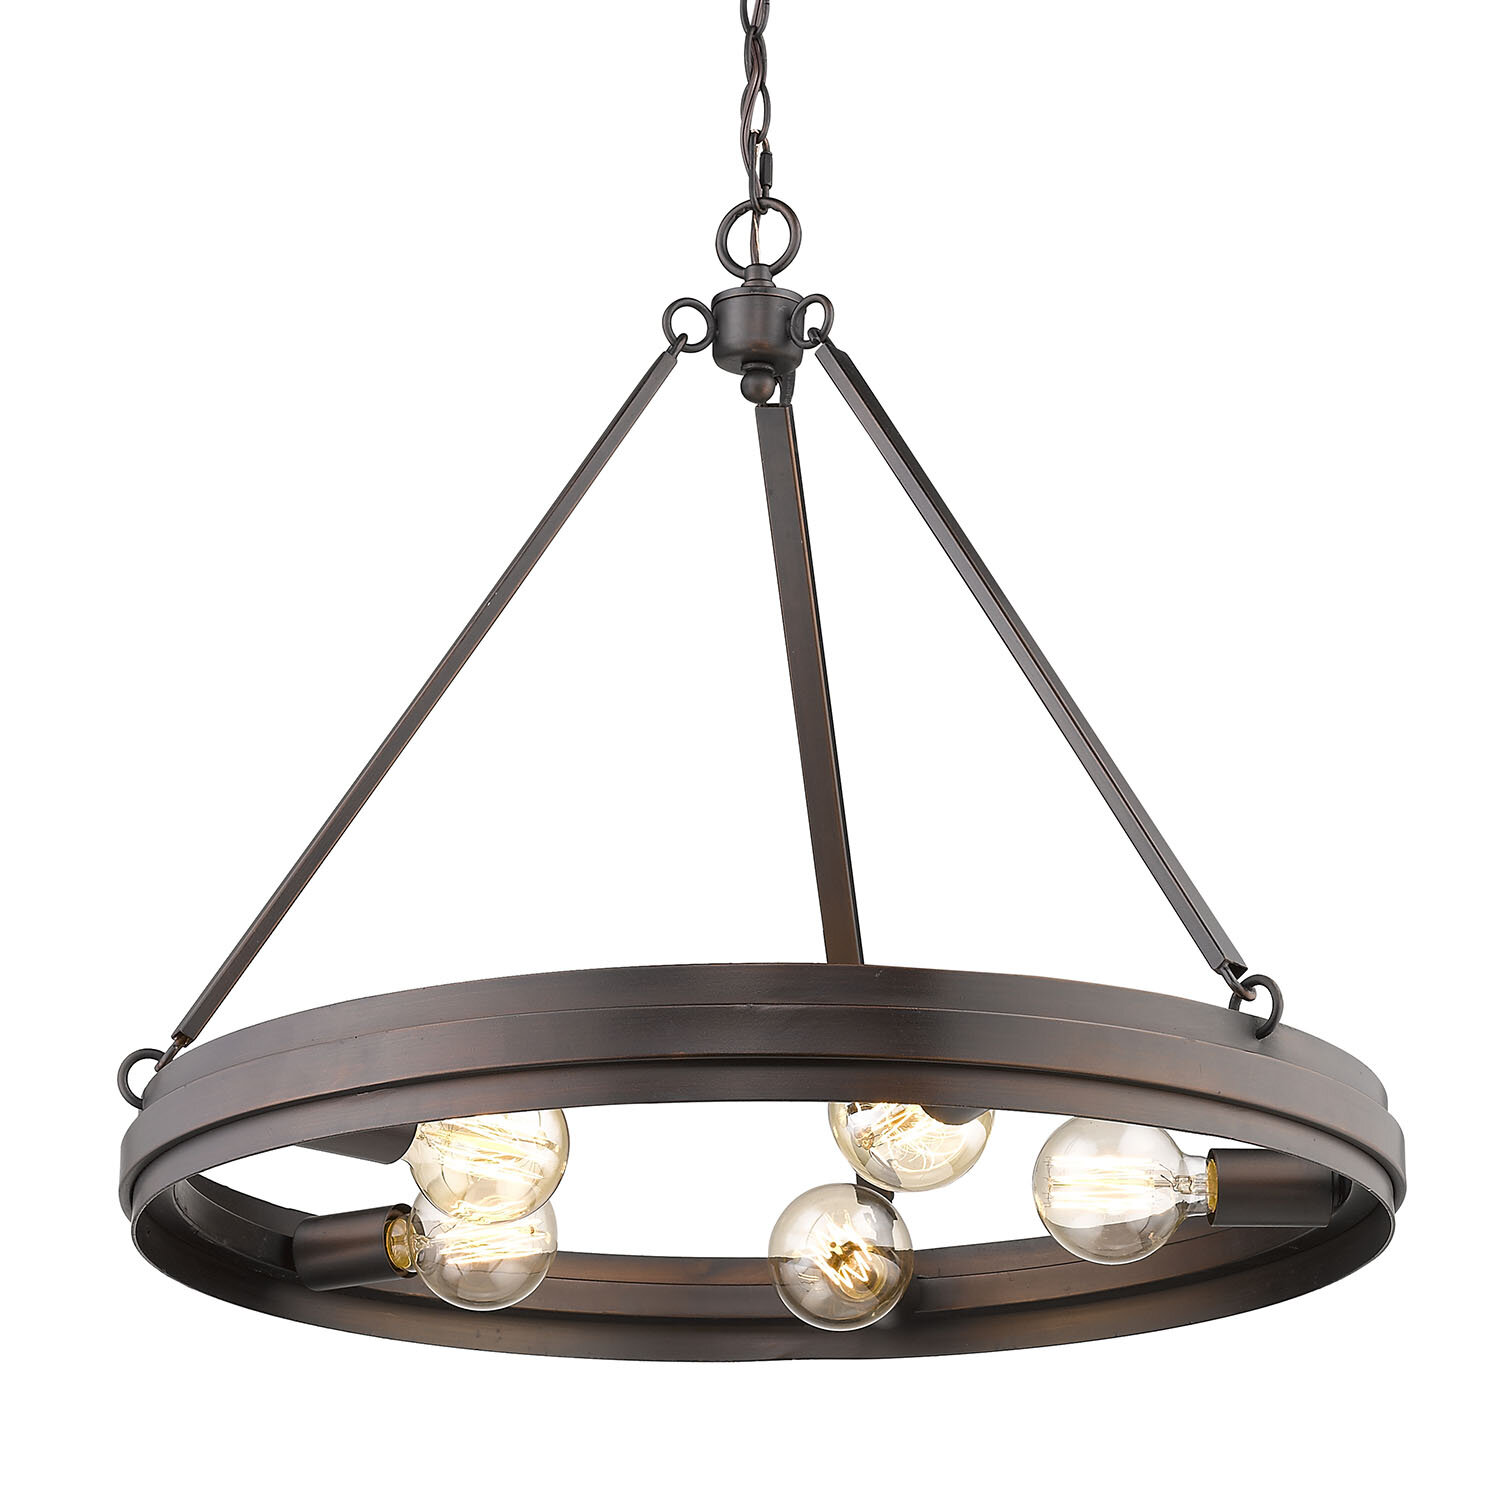 Bardell 5 light wagon wheel chandelier